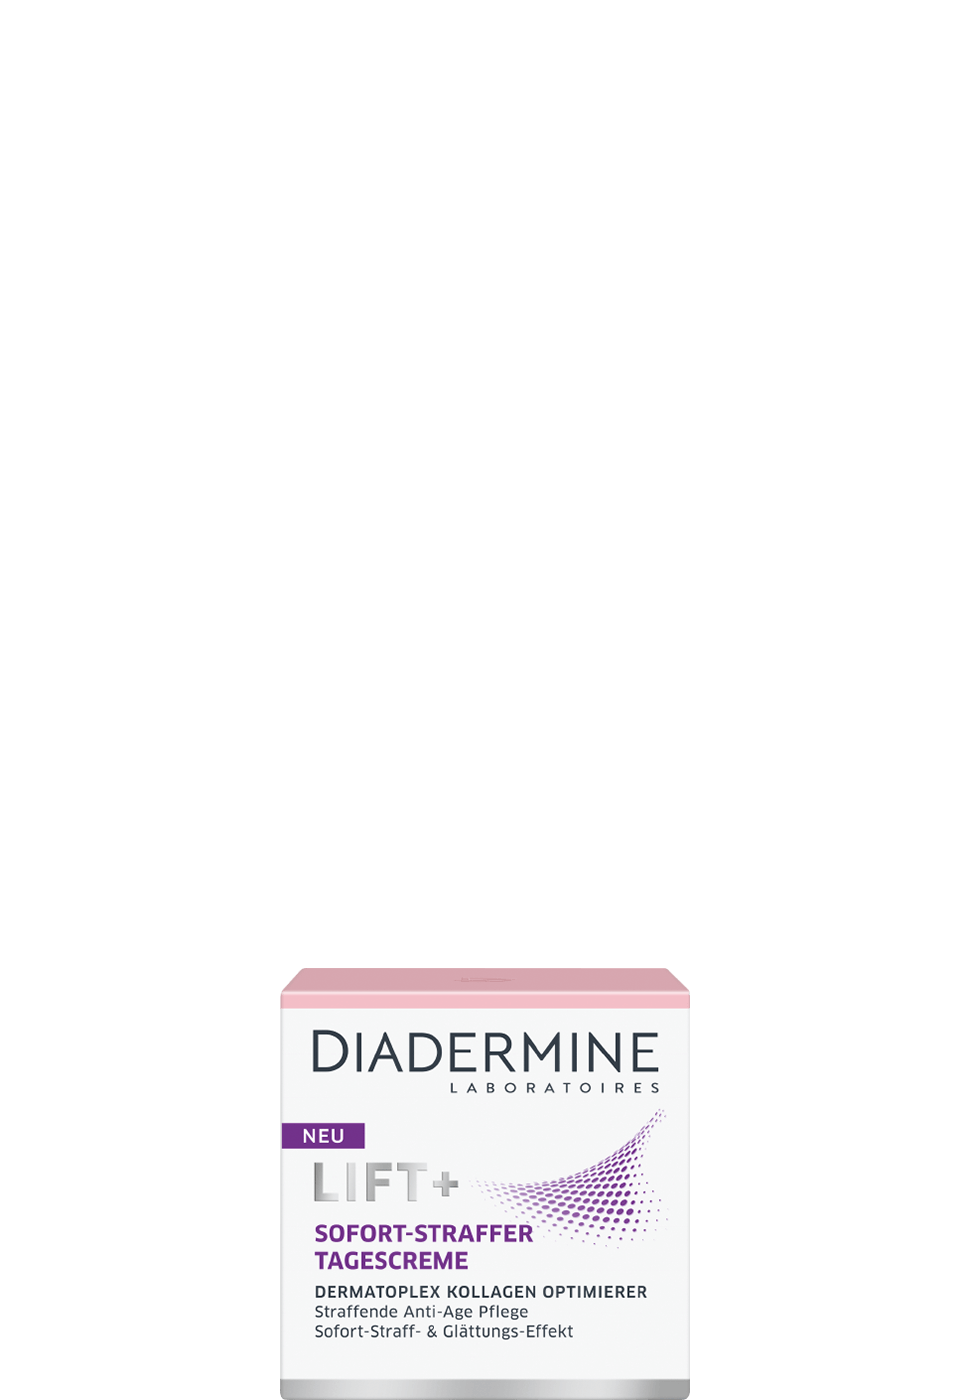 diadermine_at_lift_plus_sofort_straffer_tagescreme_970x1400